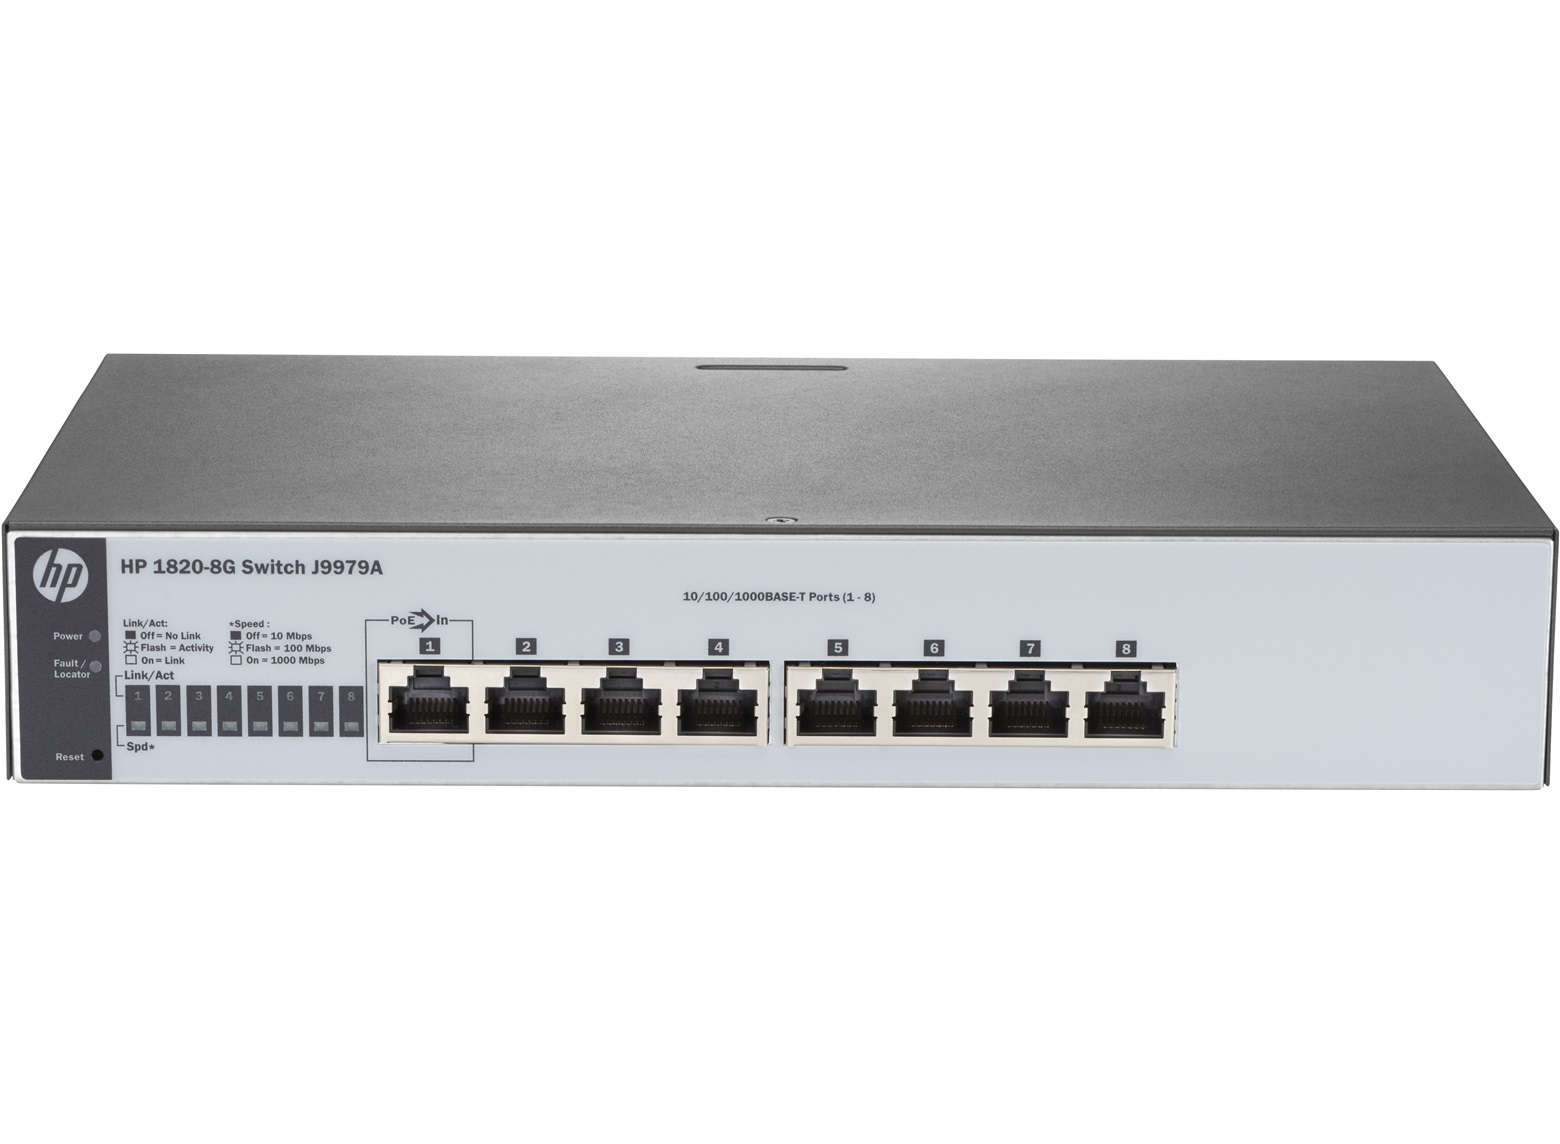 HPE 1820 8G Switch